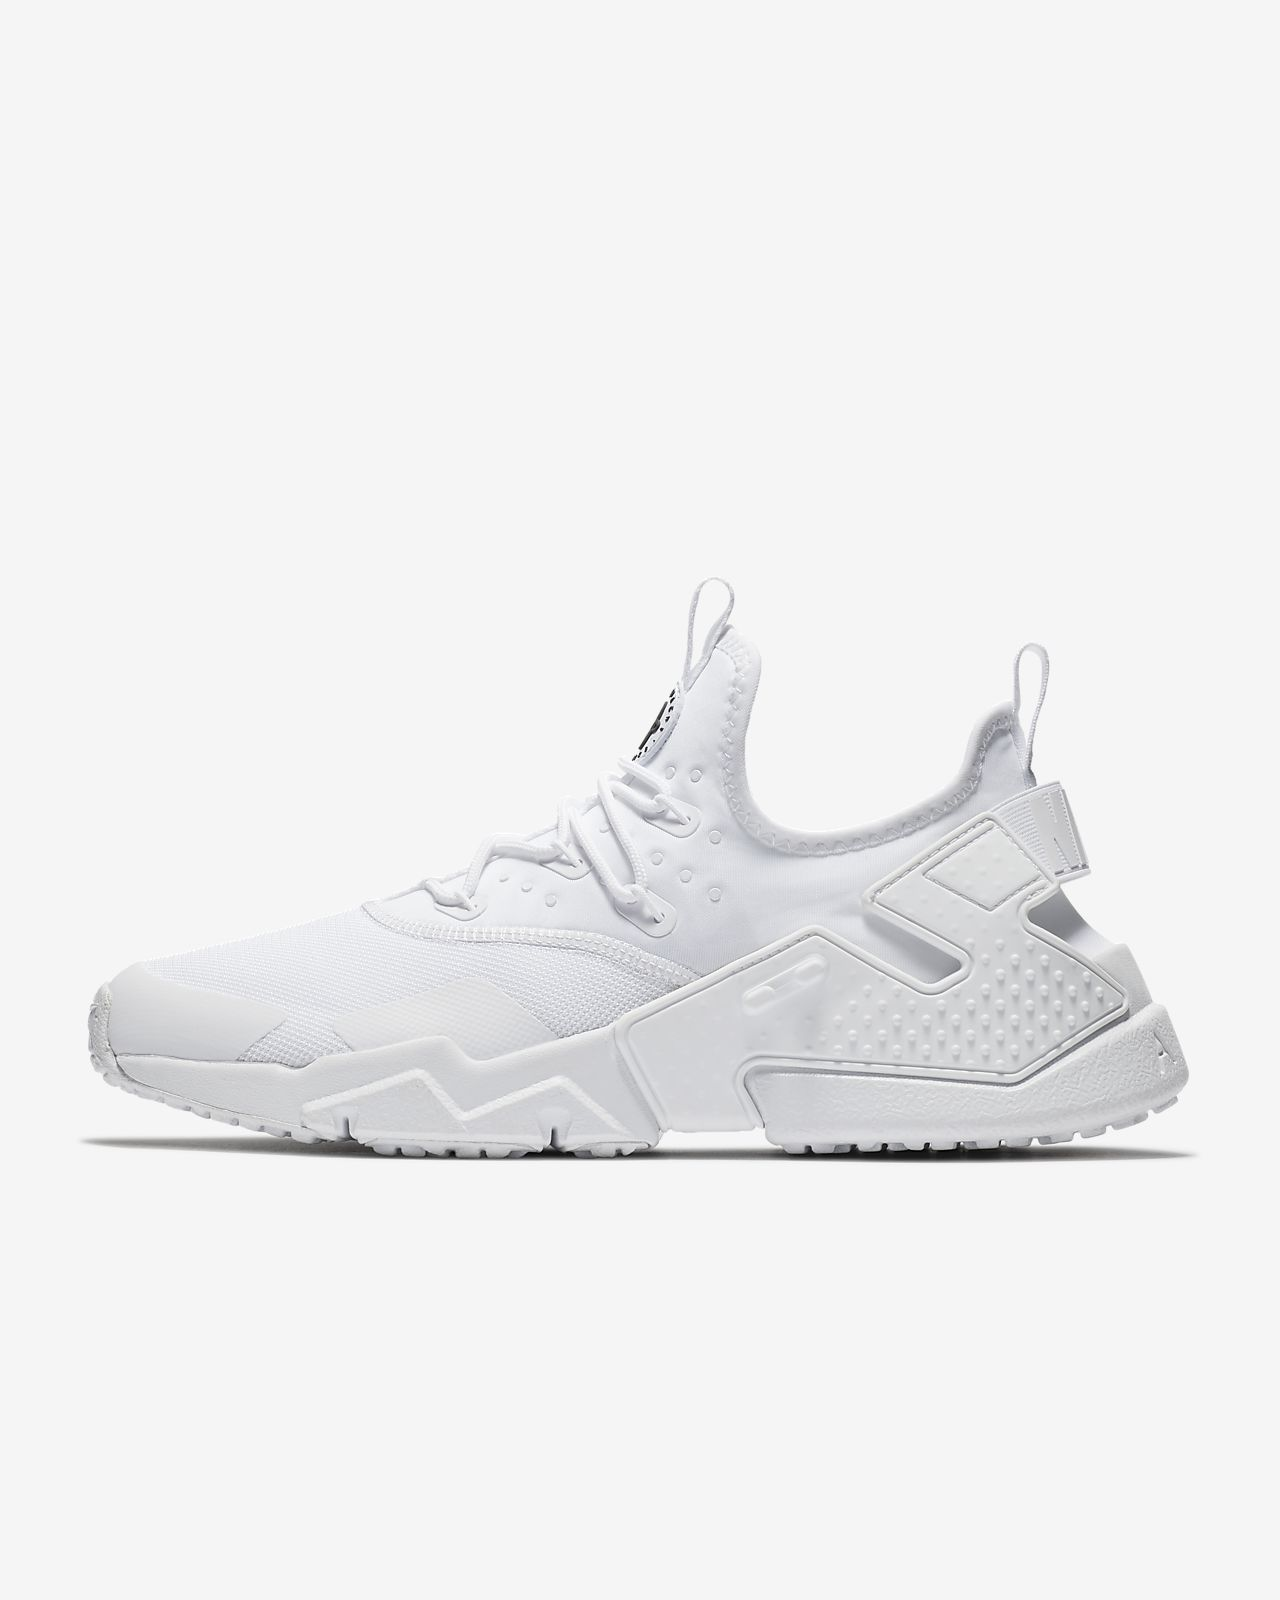 0e0c46539fdb0 Nike Air Huarache Drift Men s Shoe. Nike.com